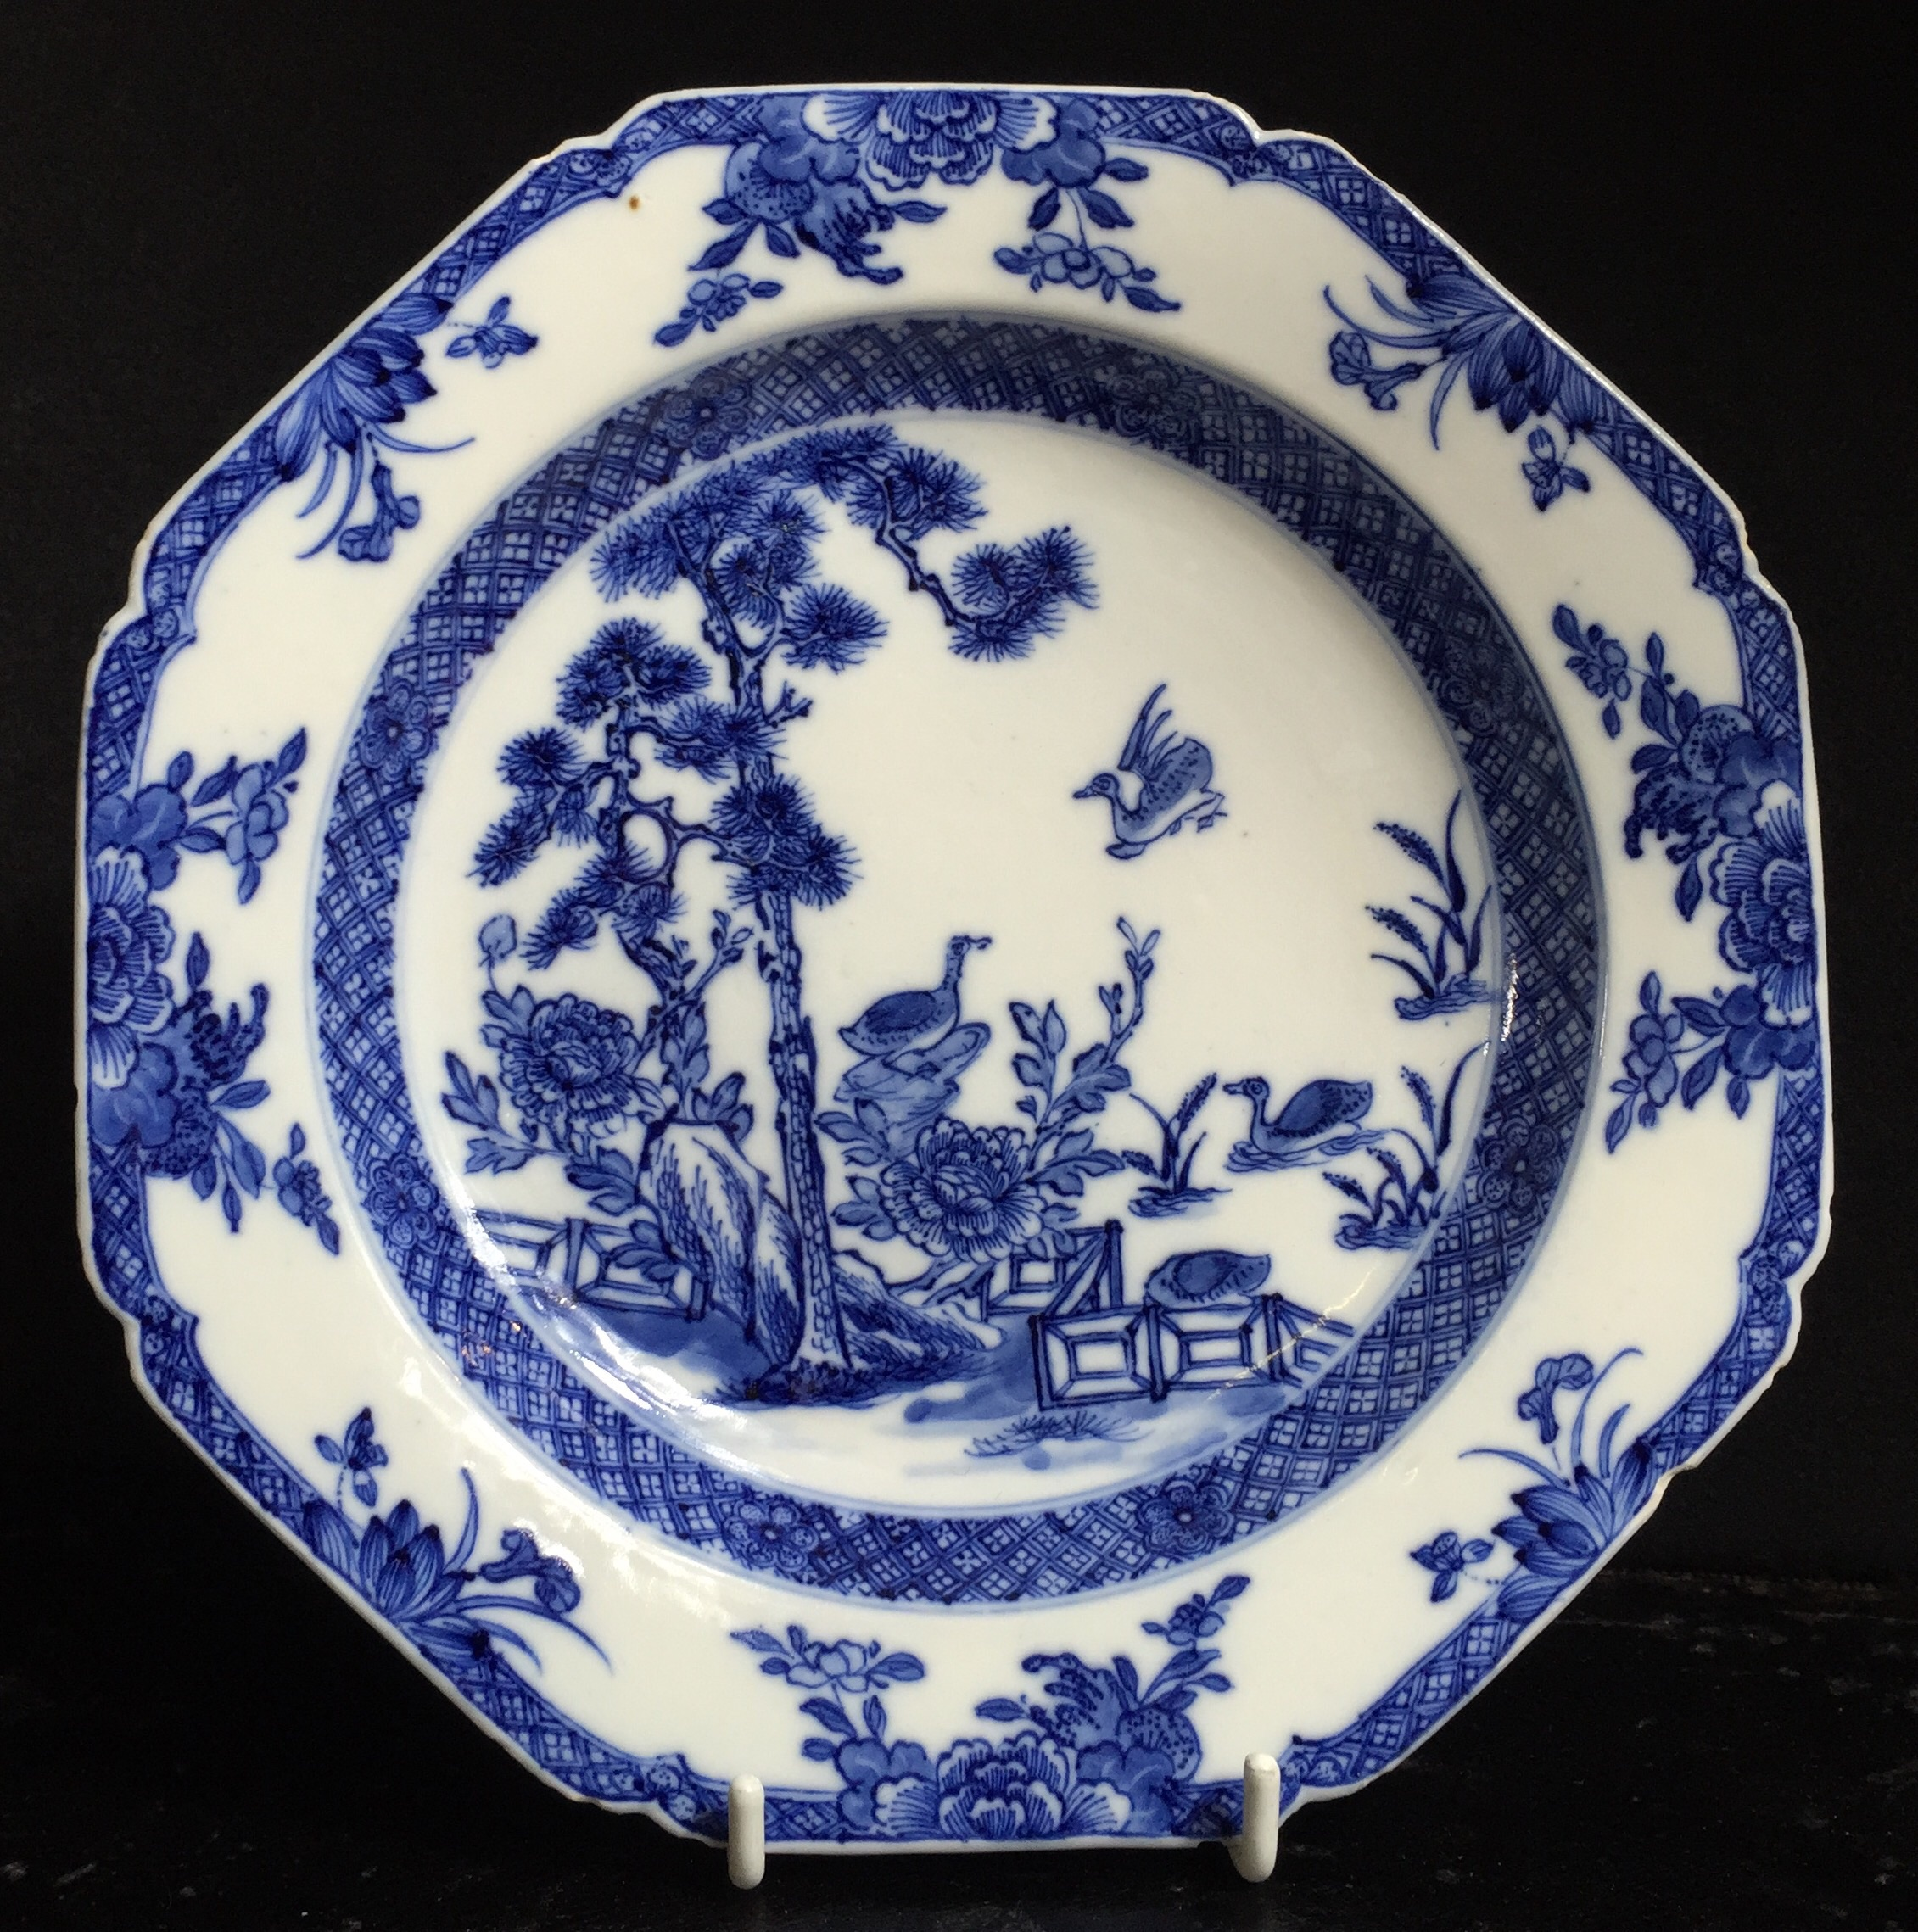 Chinese Porcelain Plate Blue White Pattern Of Birds Garden C 1750 Moorabool Antiques Galleries